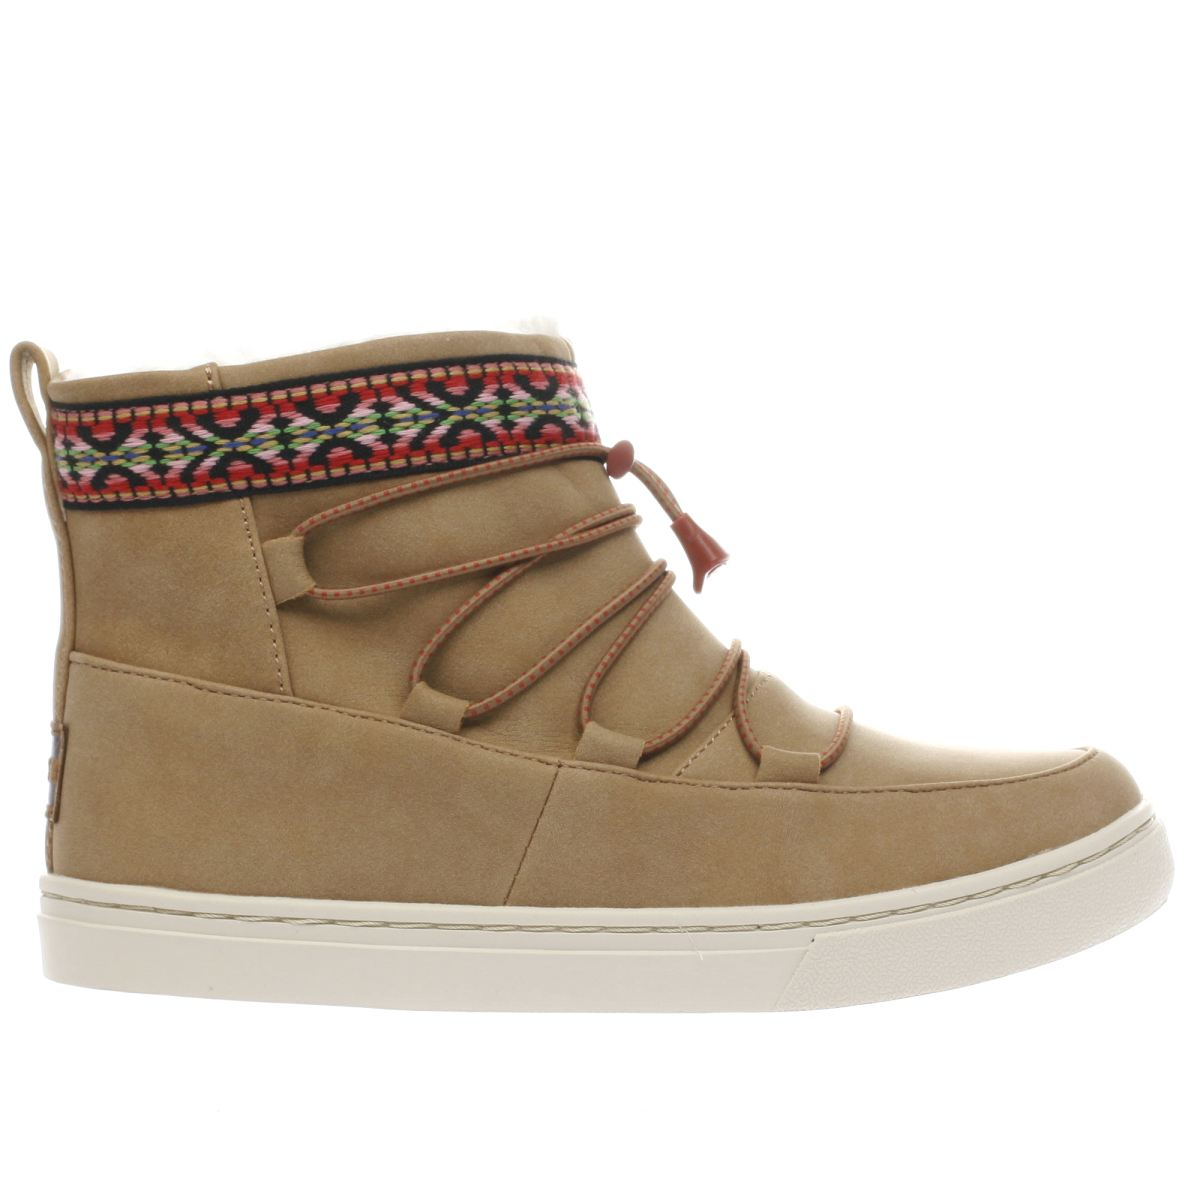 toms tan alpine boot Girls Junior Boots